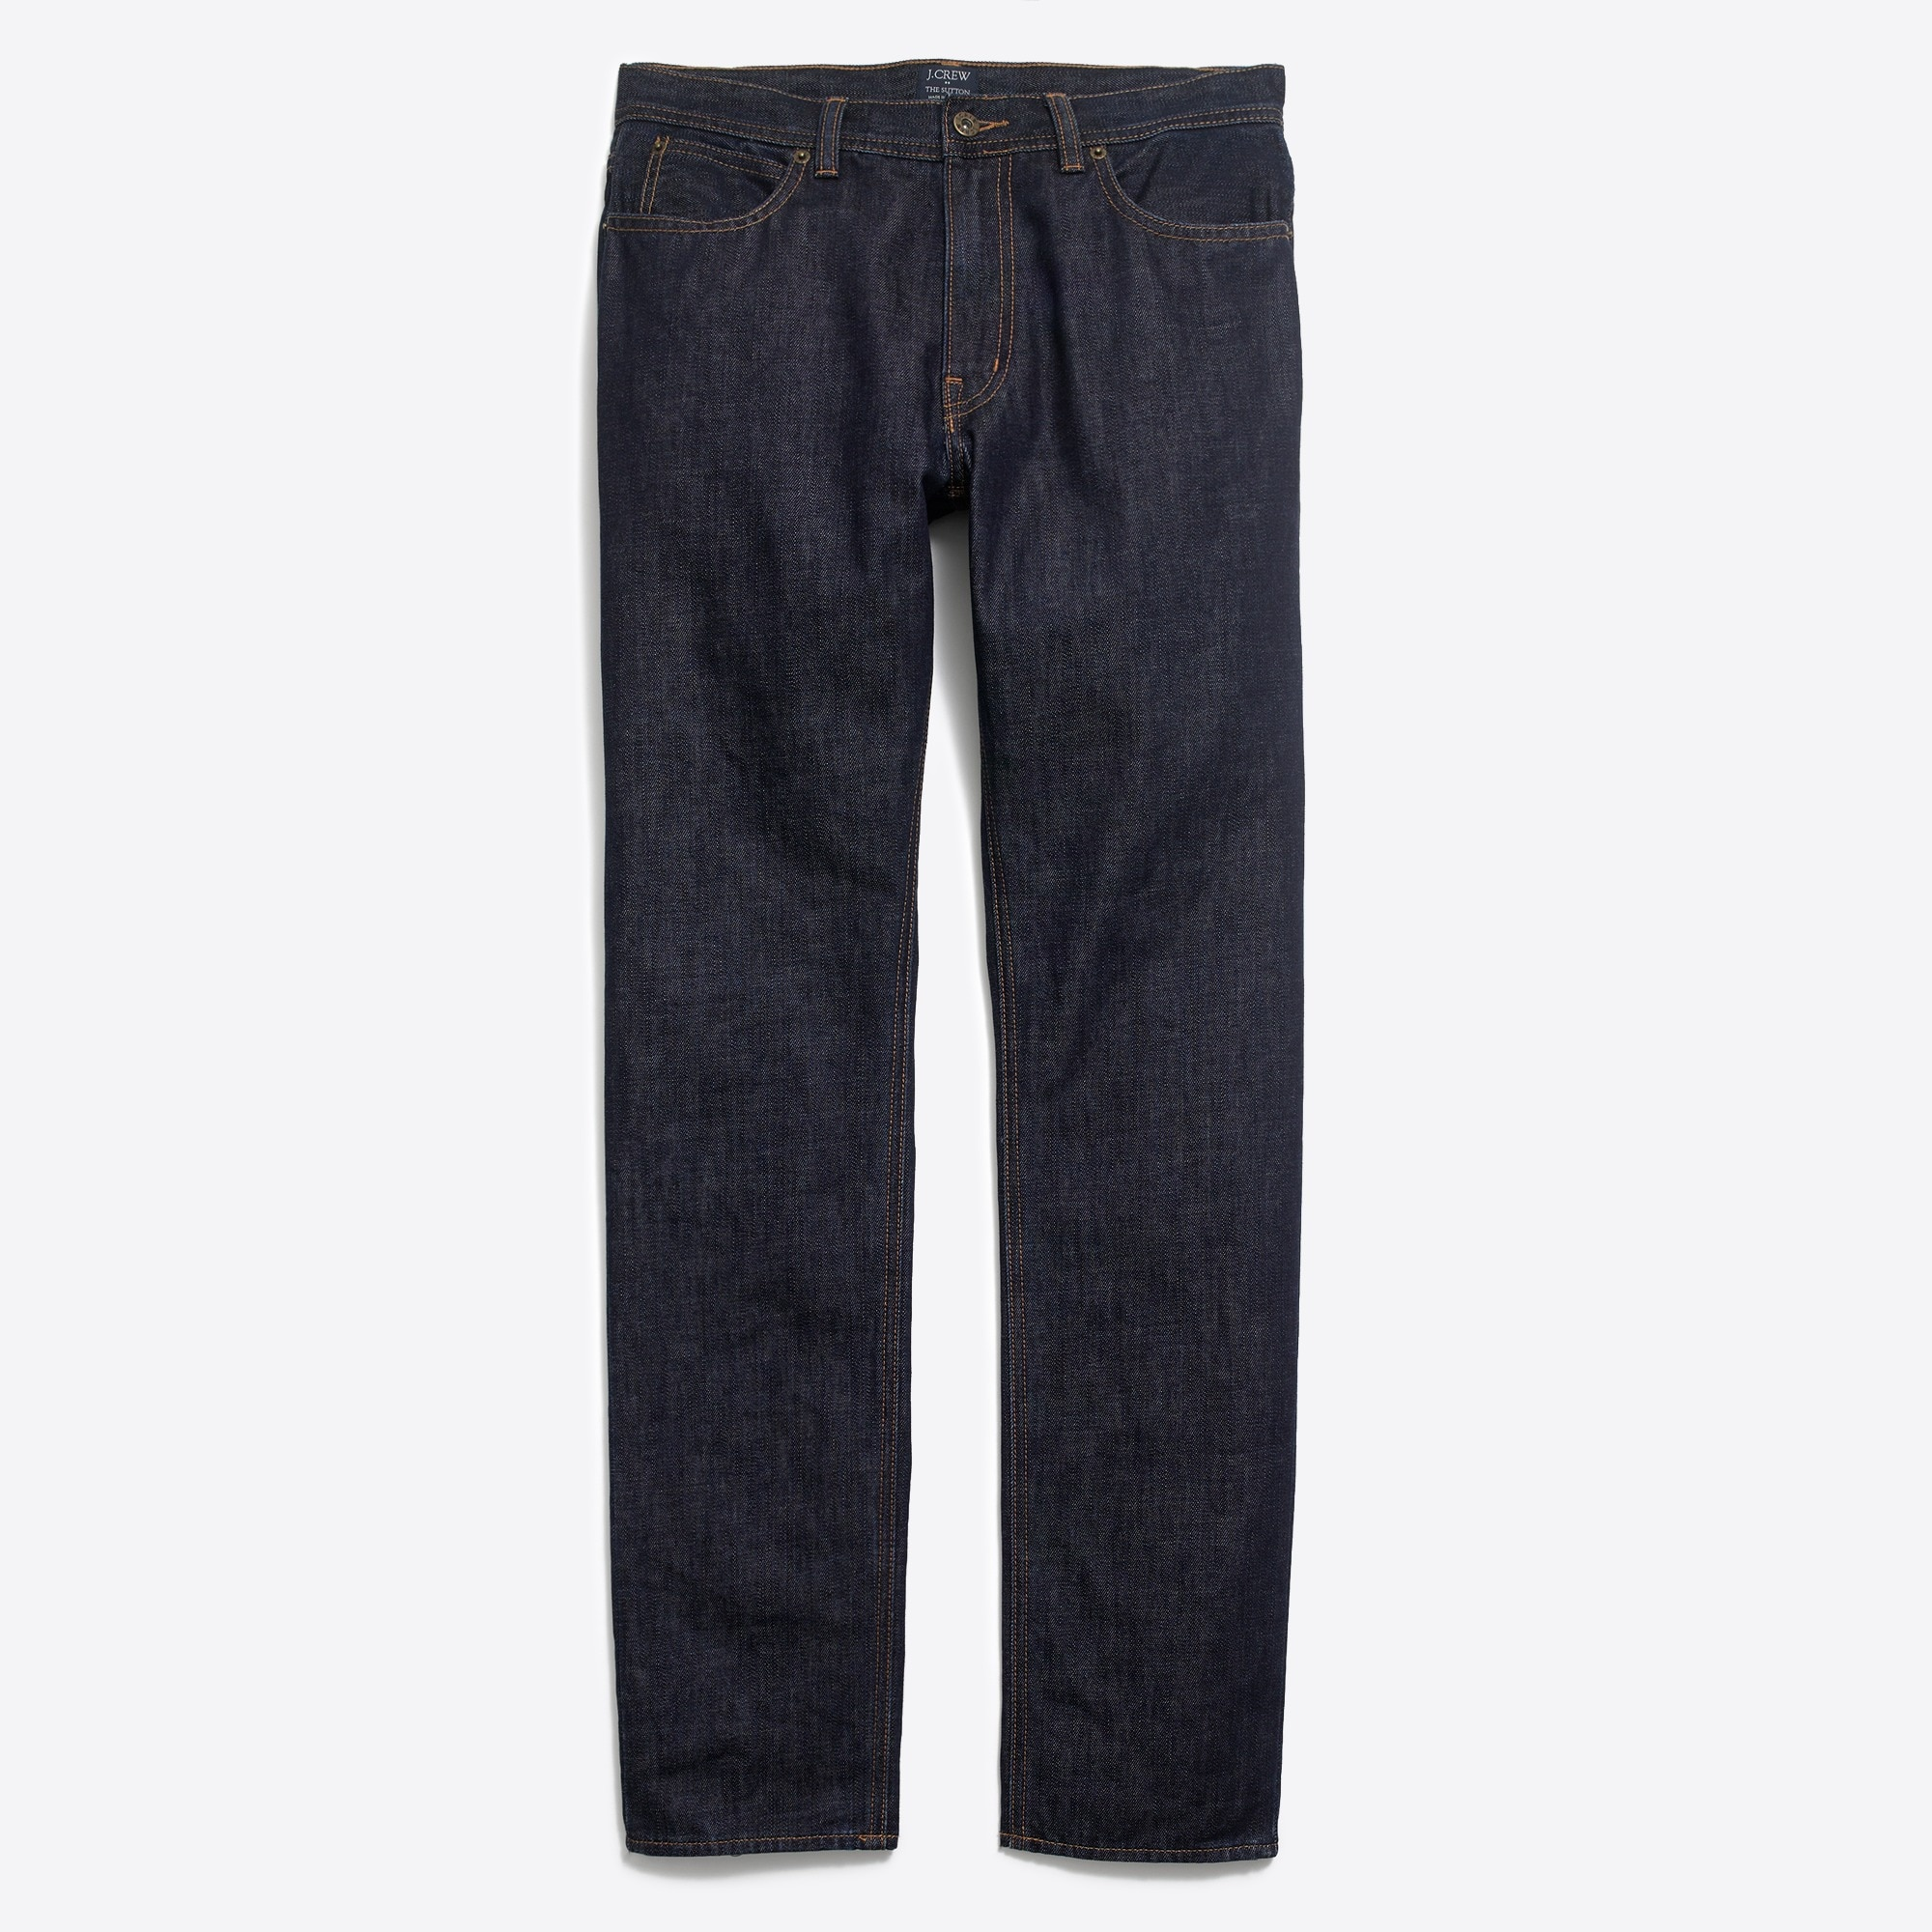 Image 4 for Athletic-fit jean in dark wash